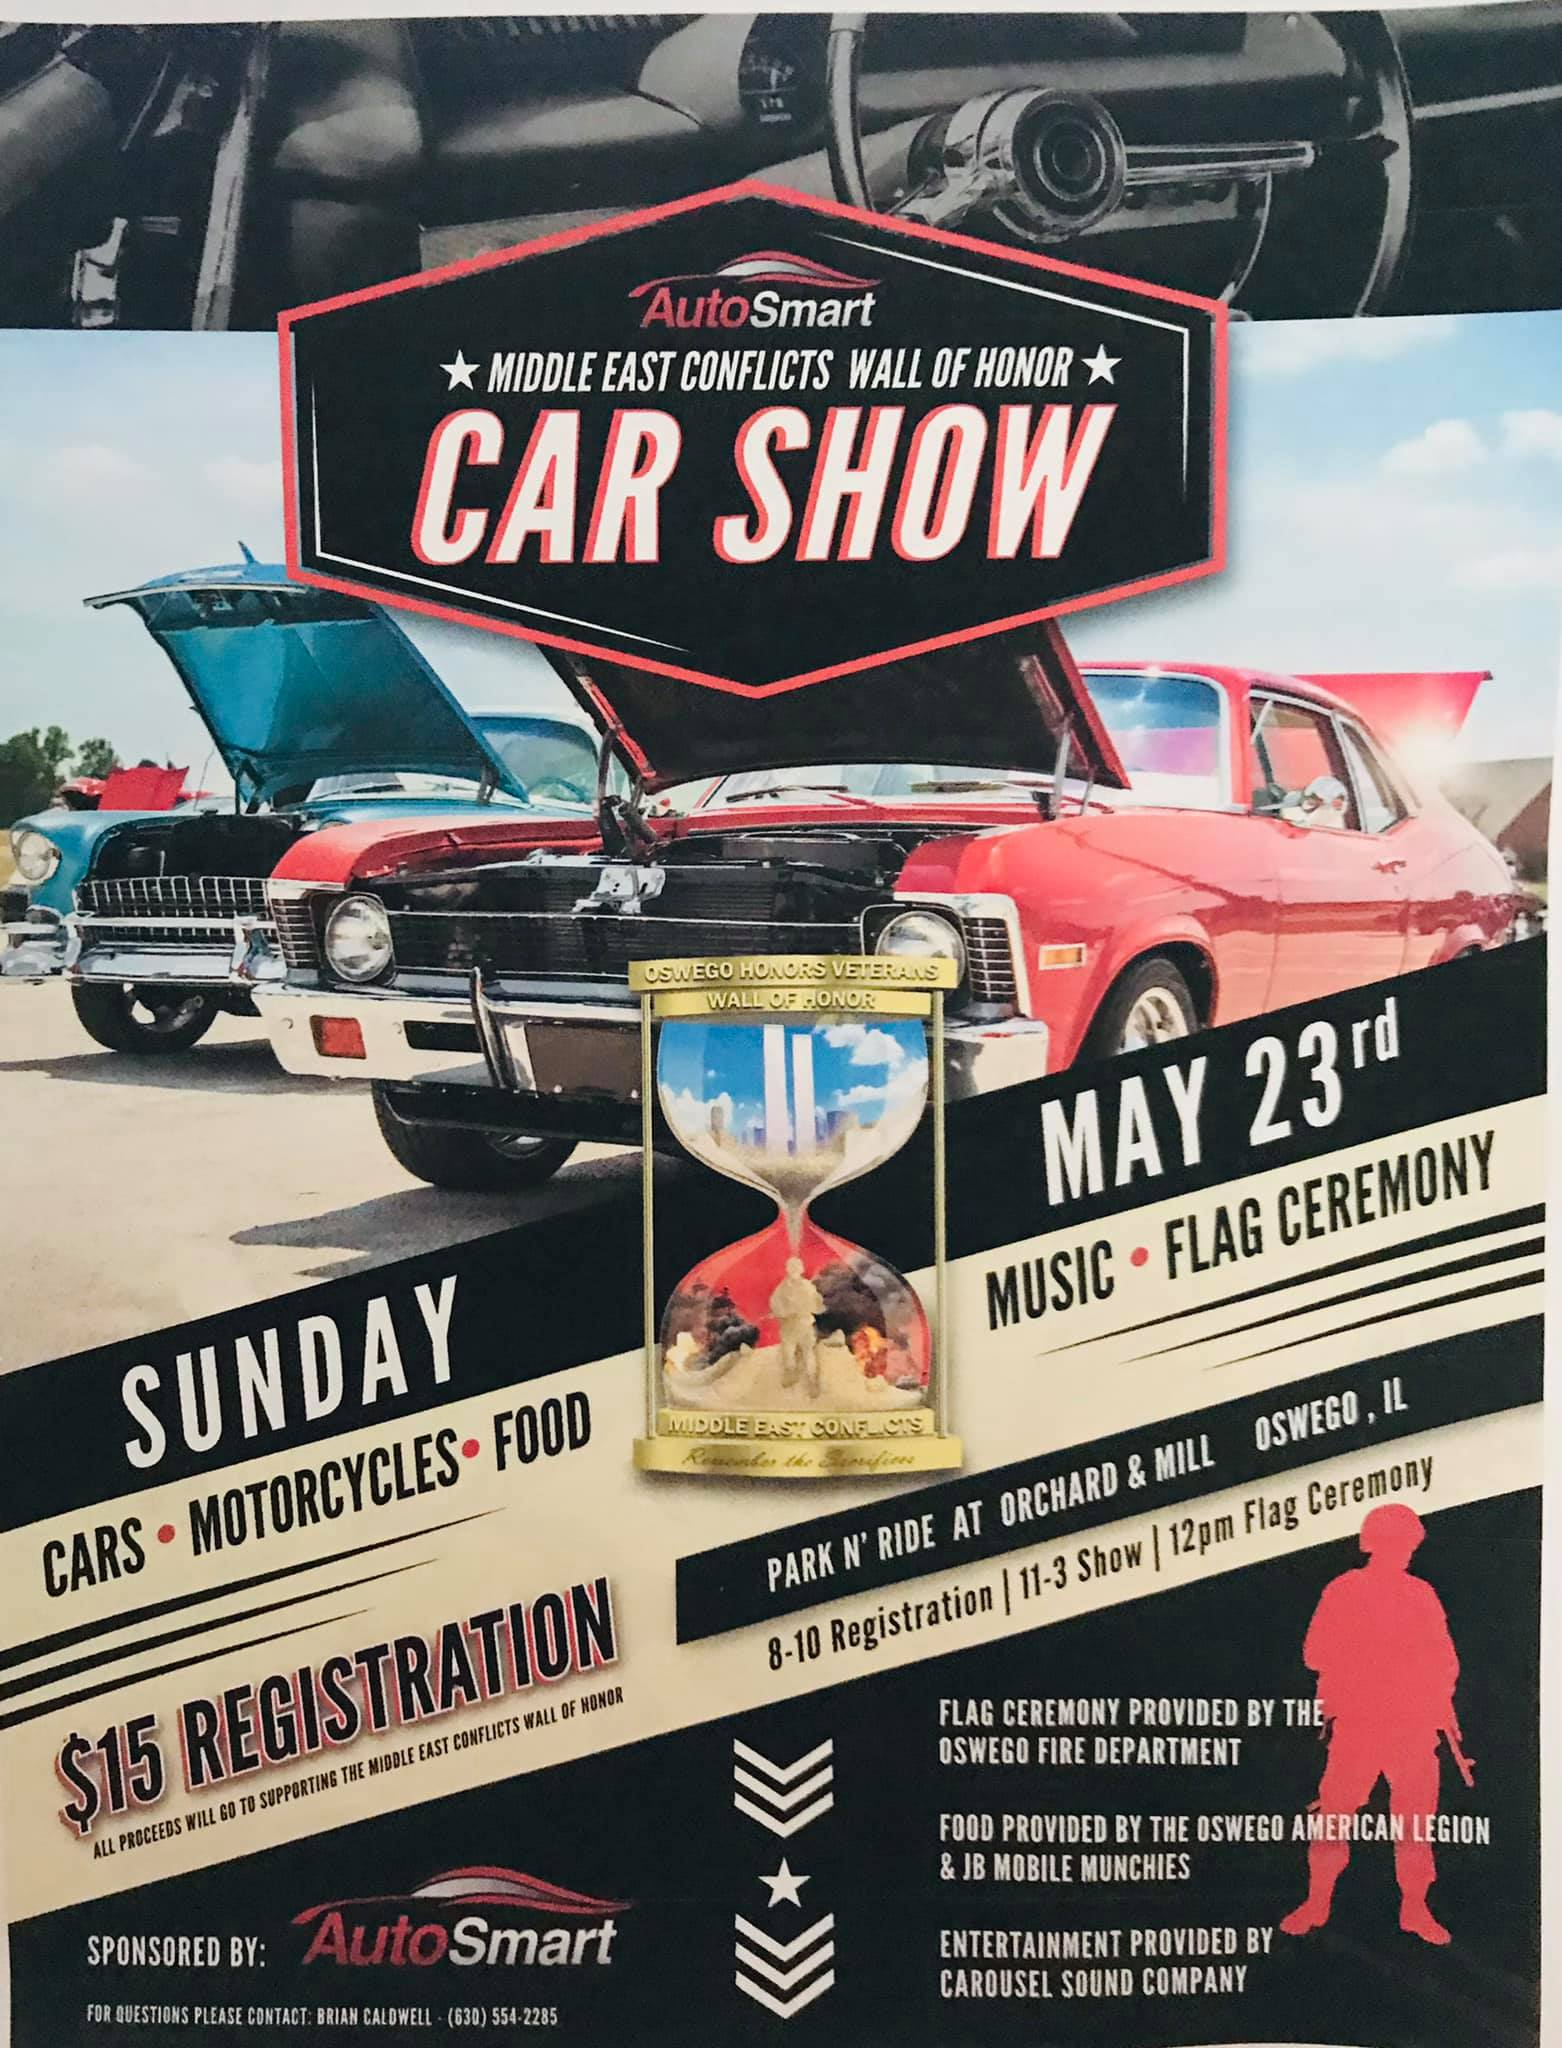 Car Show on May 23